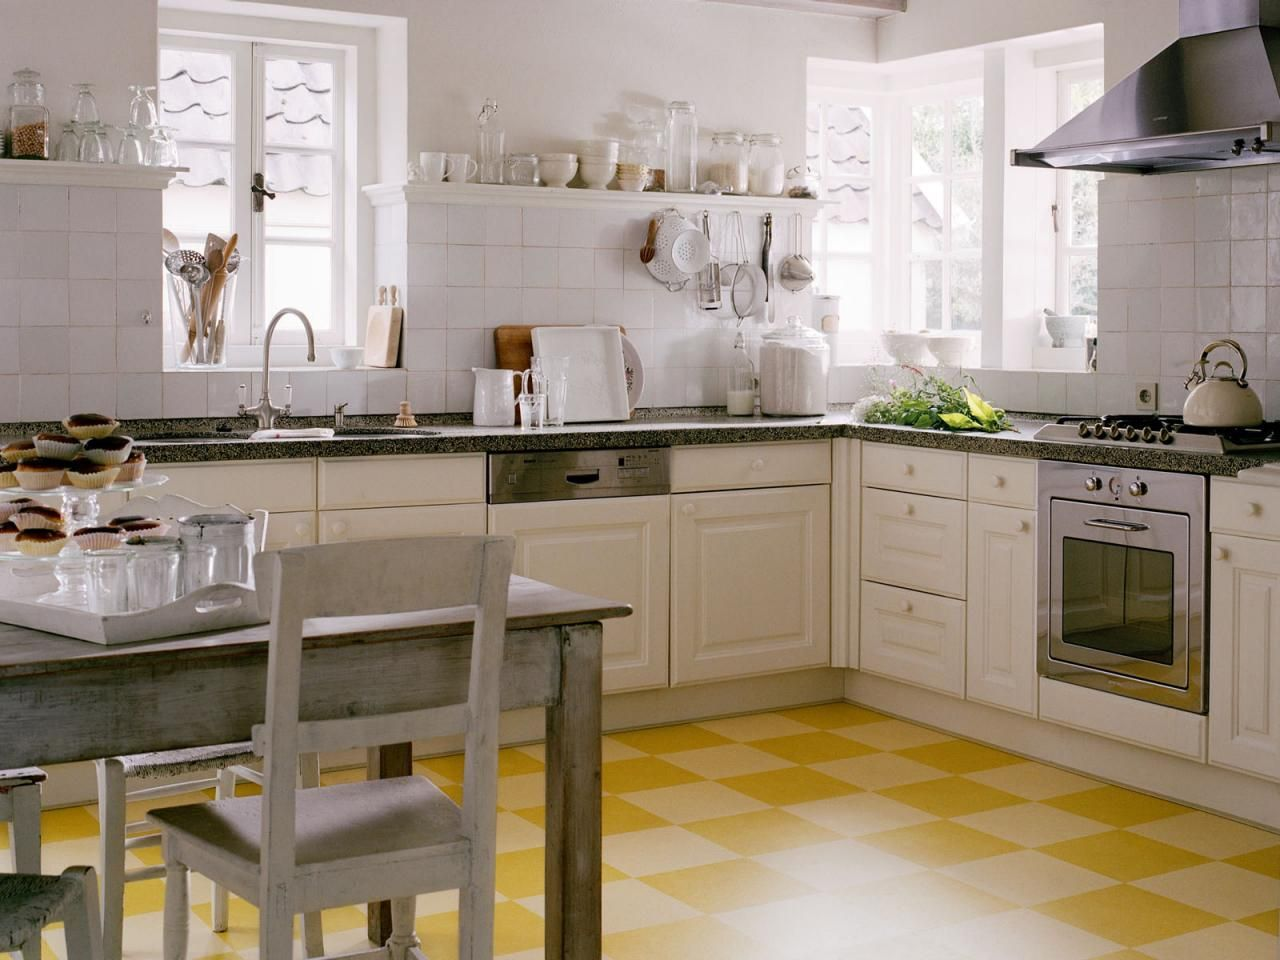 floors kitchen flooring types Browse photos of linoleum flooring designs and styles for the kitchen at HGTVRemodels